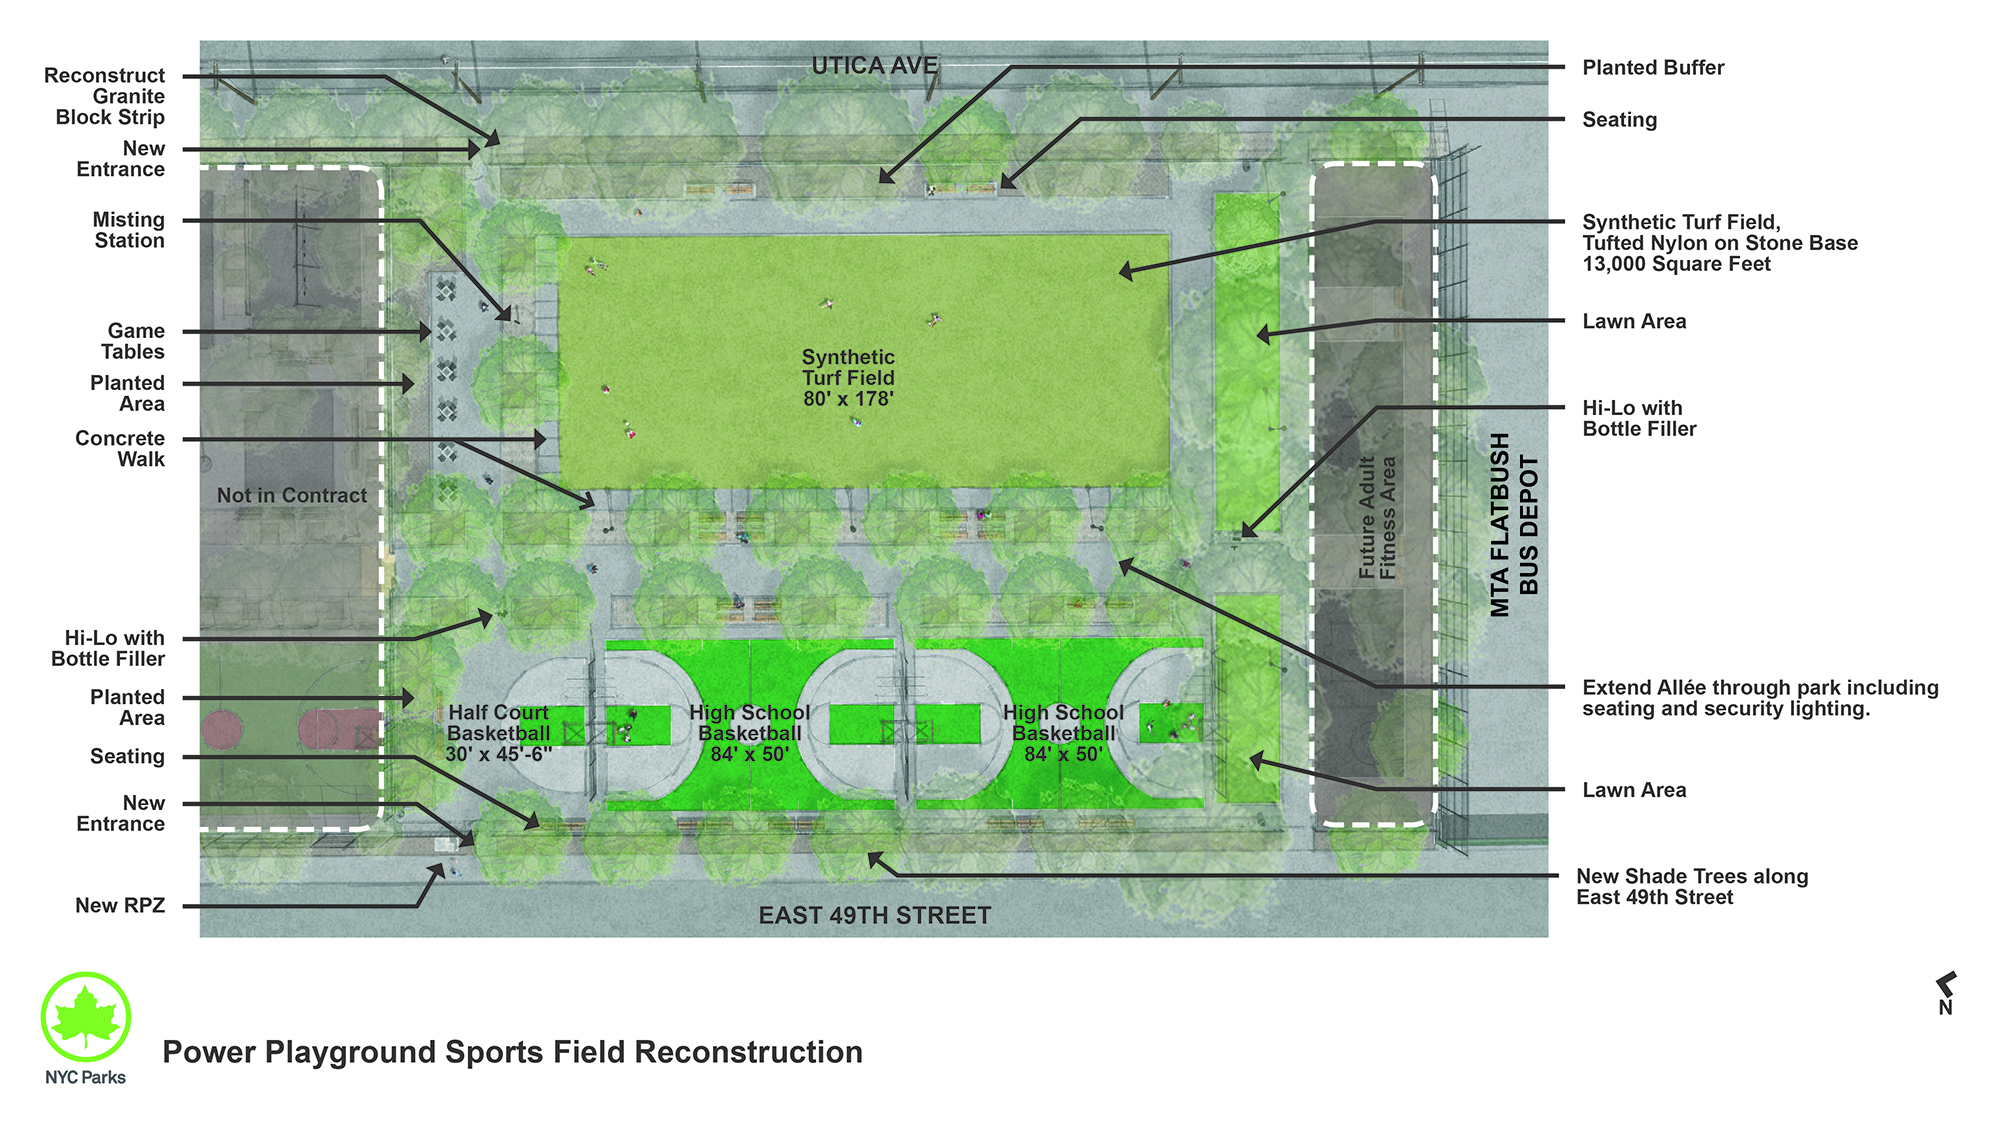 Design of Power Playground Multipurpose Play Area Reconstruction